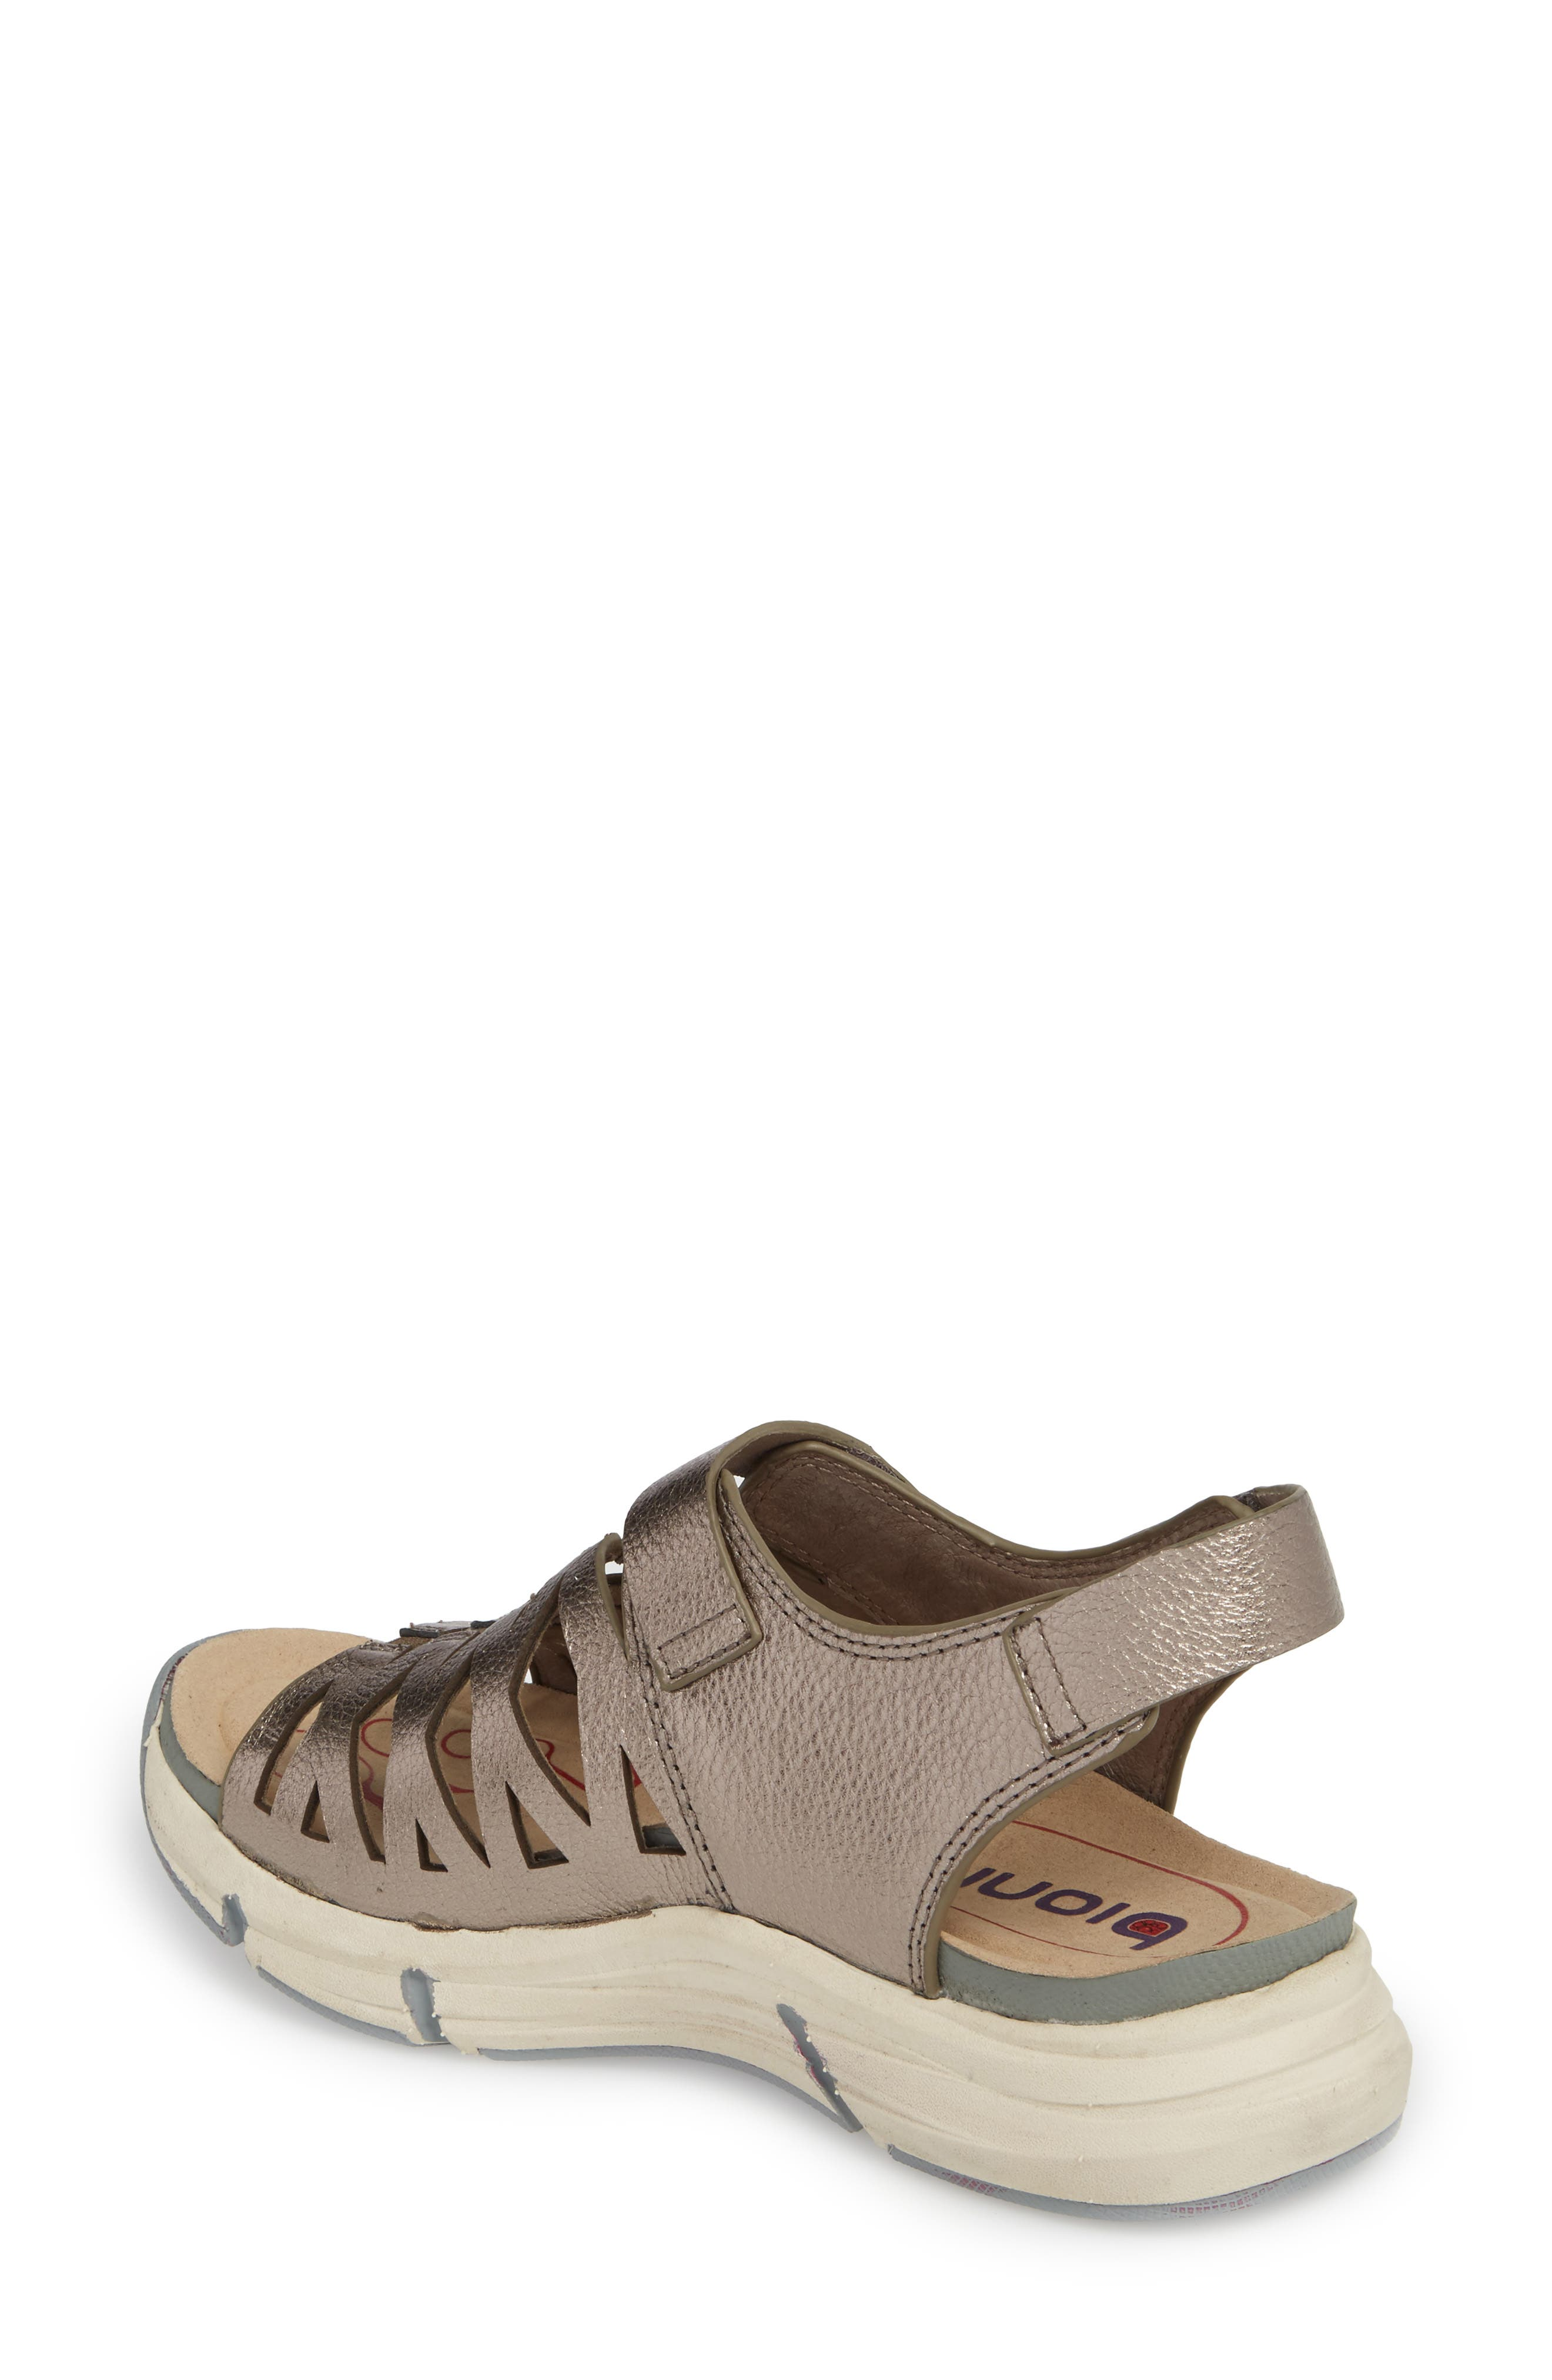 Ossipee Sandal,                             Alternate thumbnail 2, color,                             Anthracite Leather